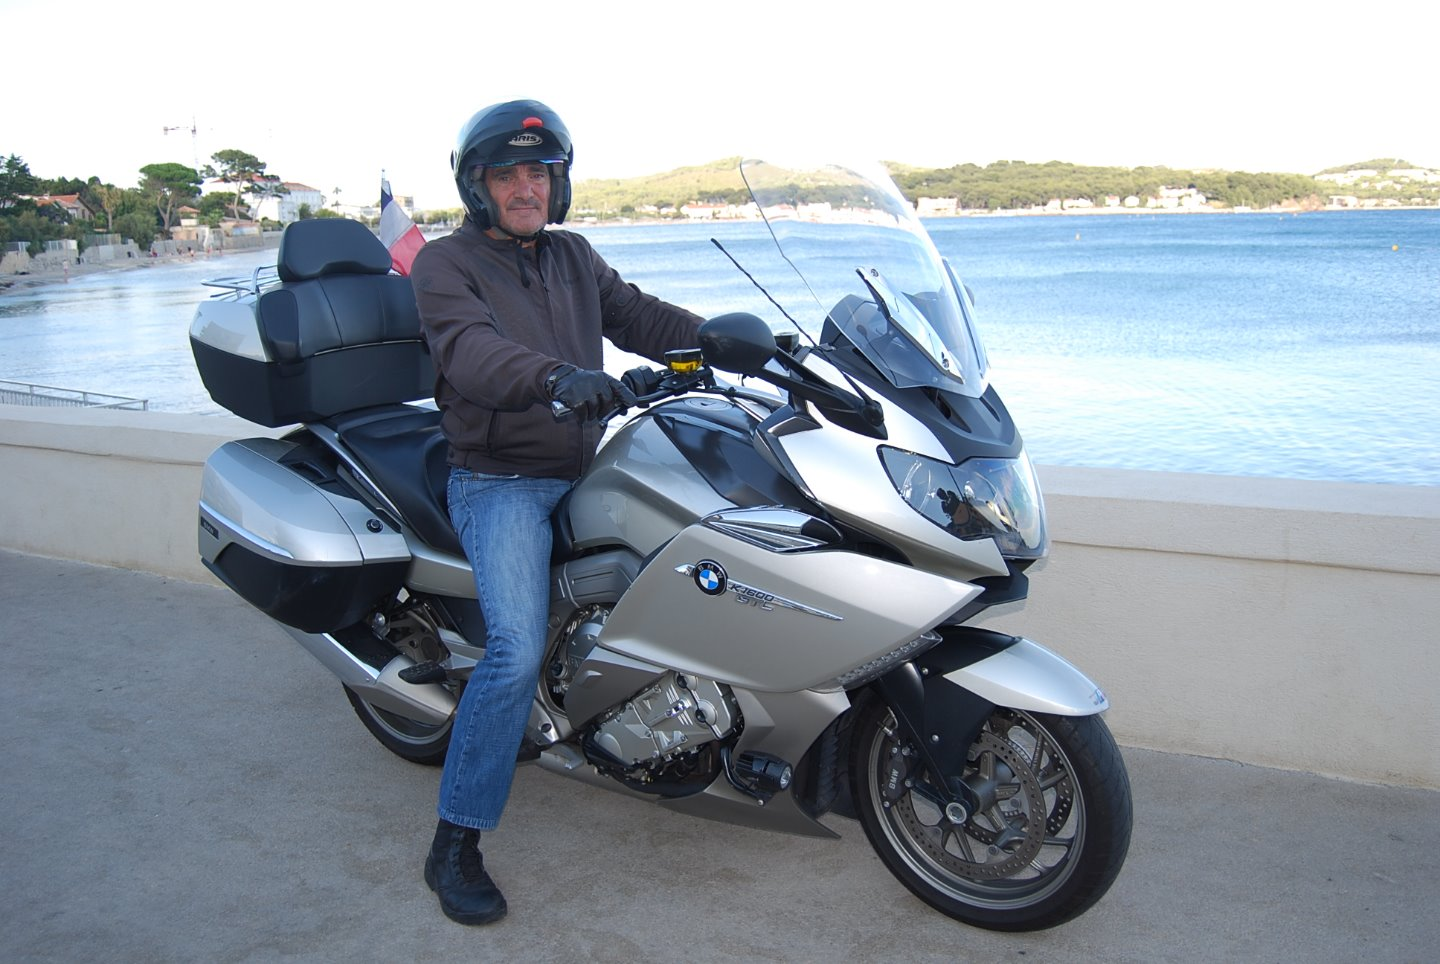 images2Taxi-moto-24